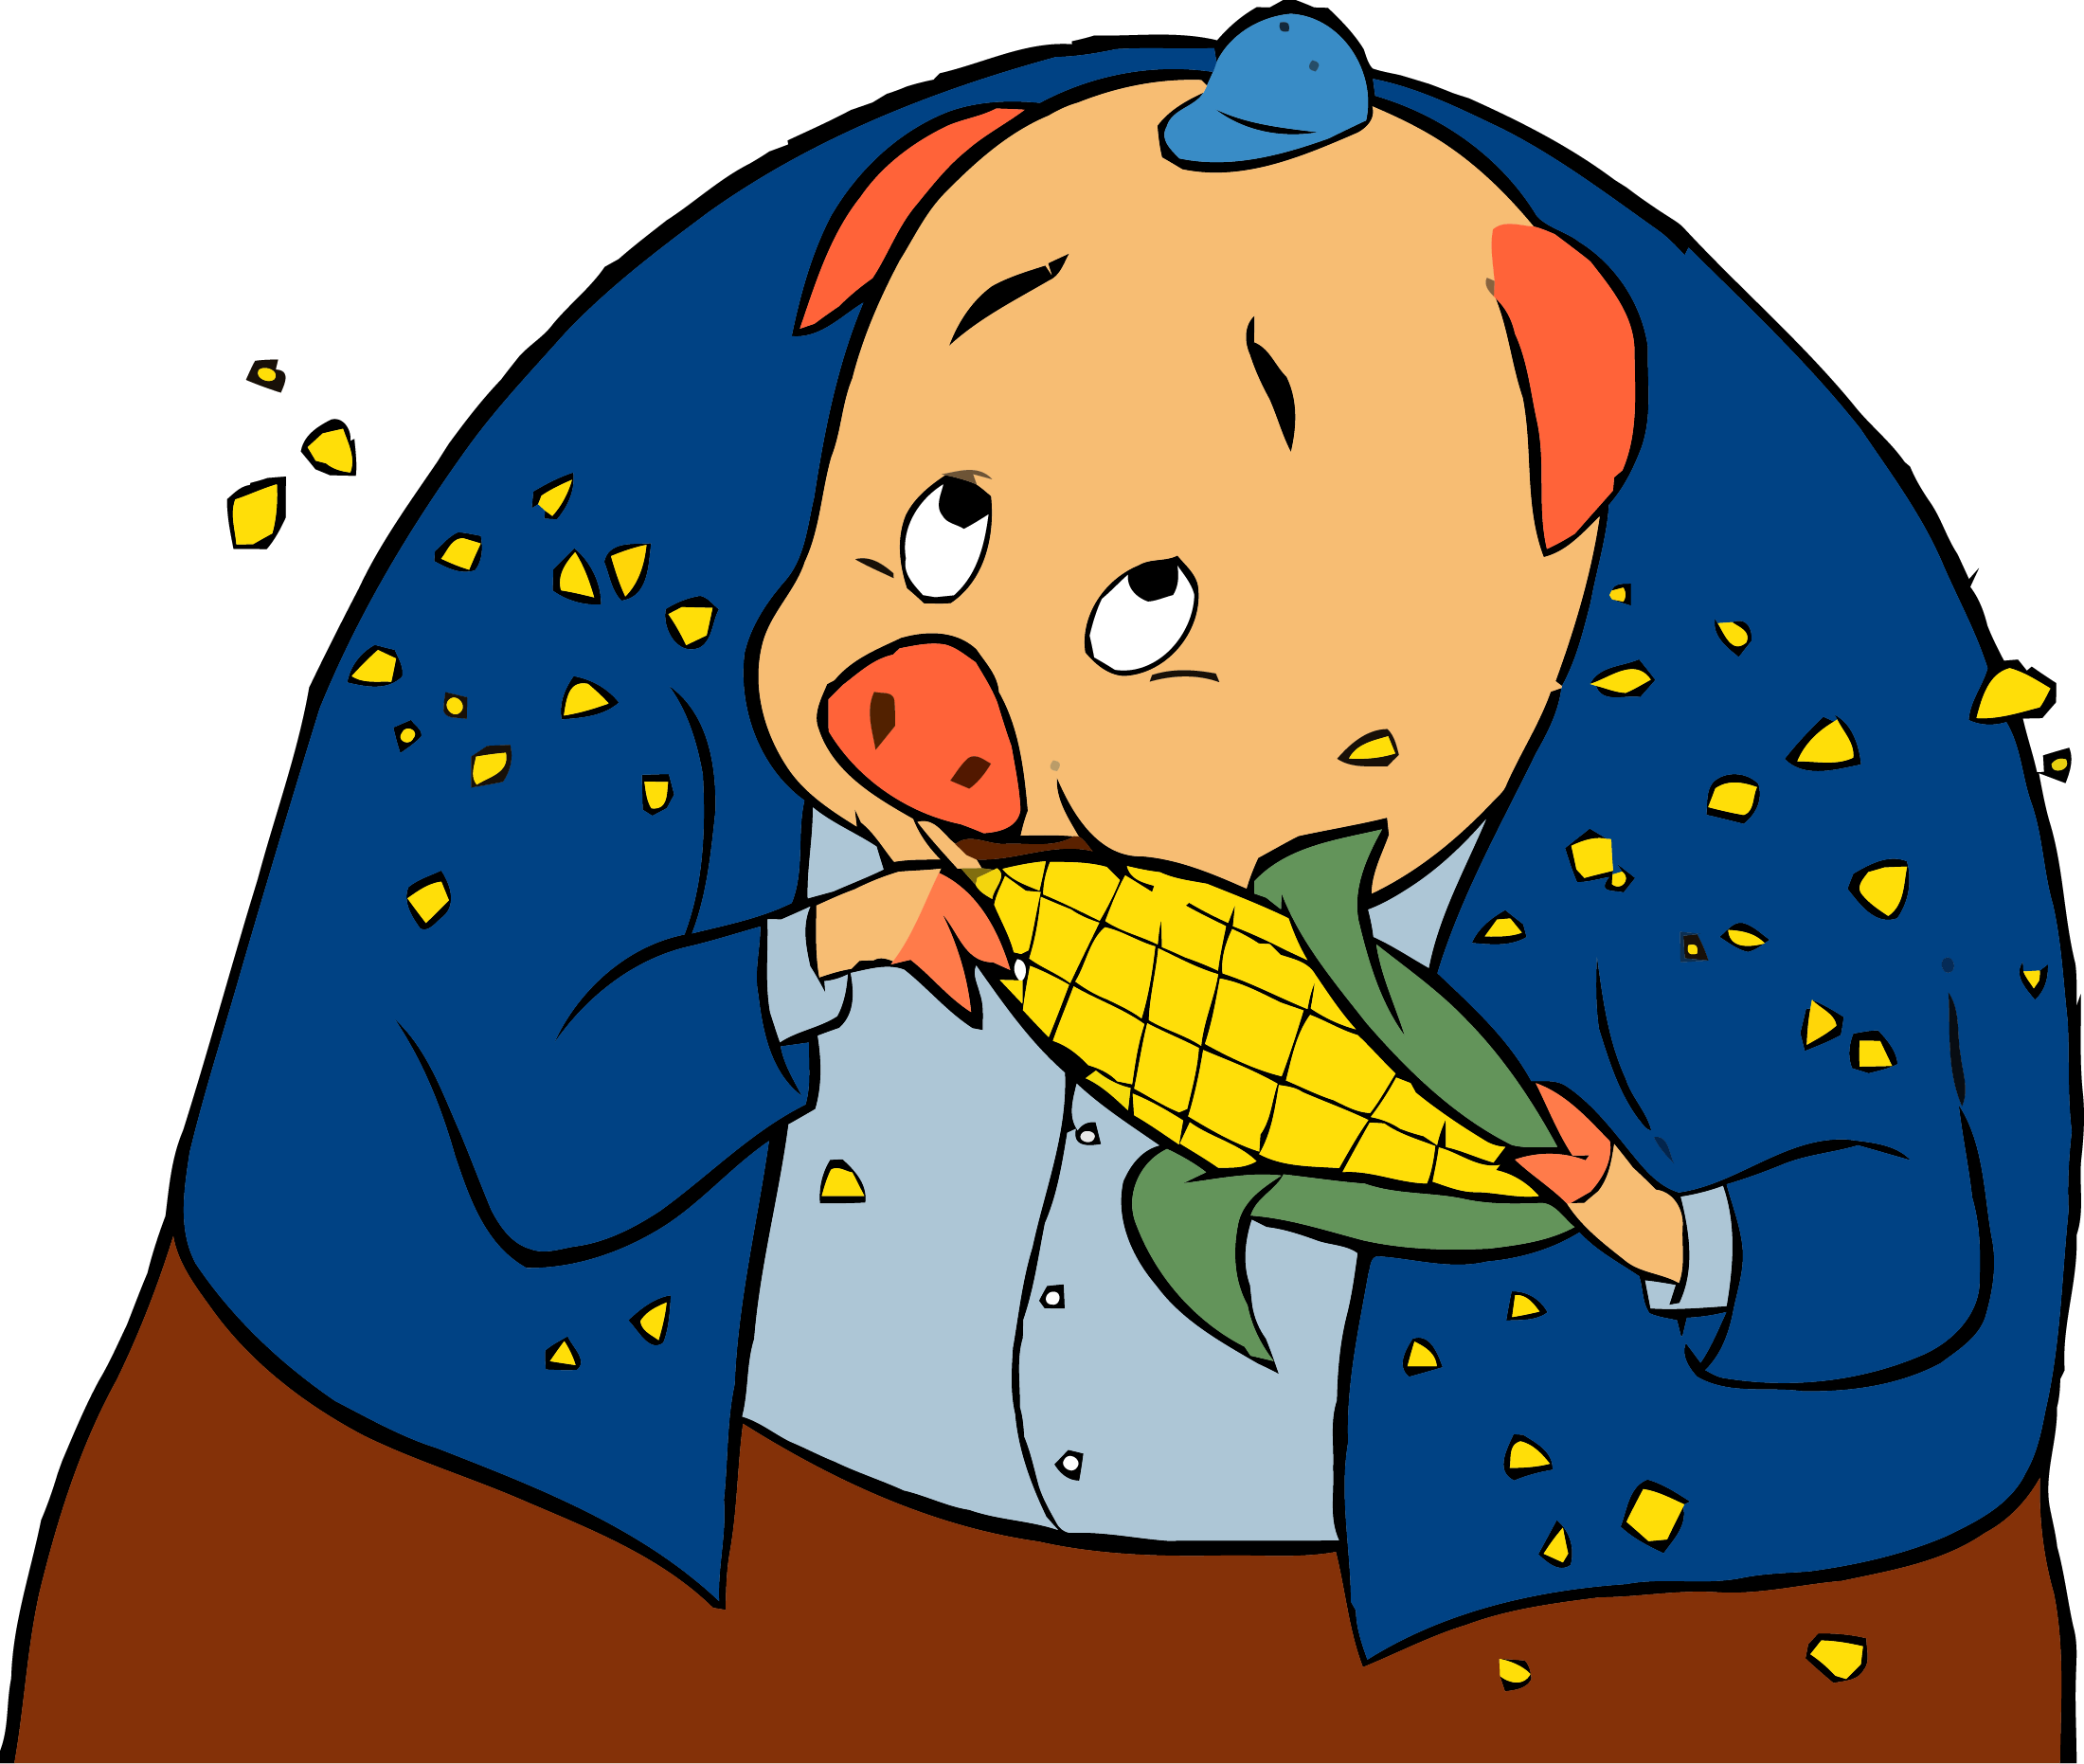 Corn clipart small. Chicken little pig png